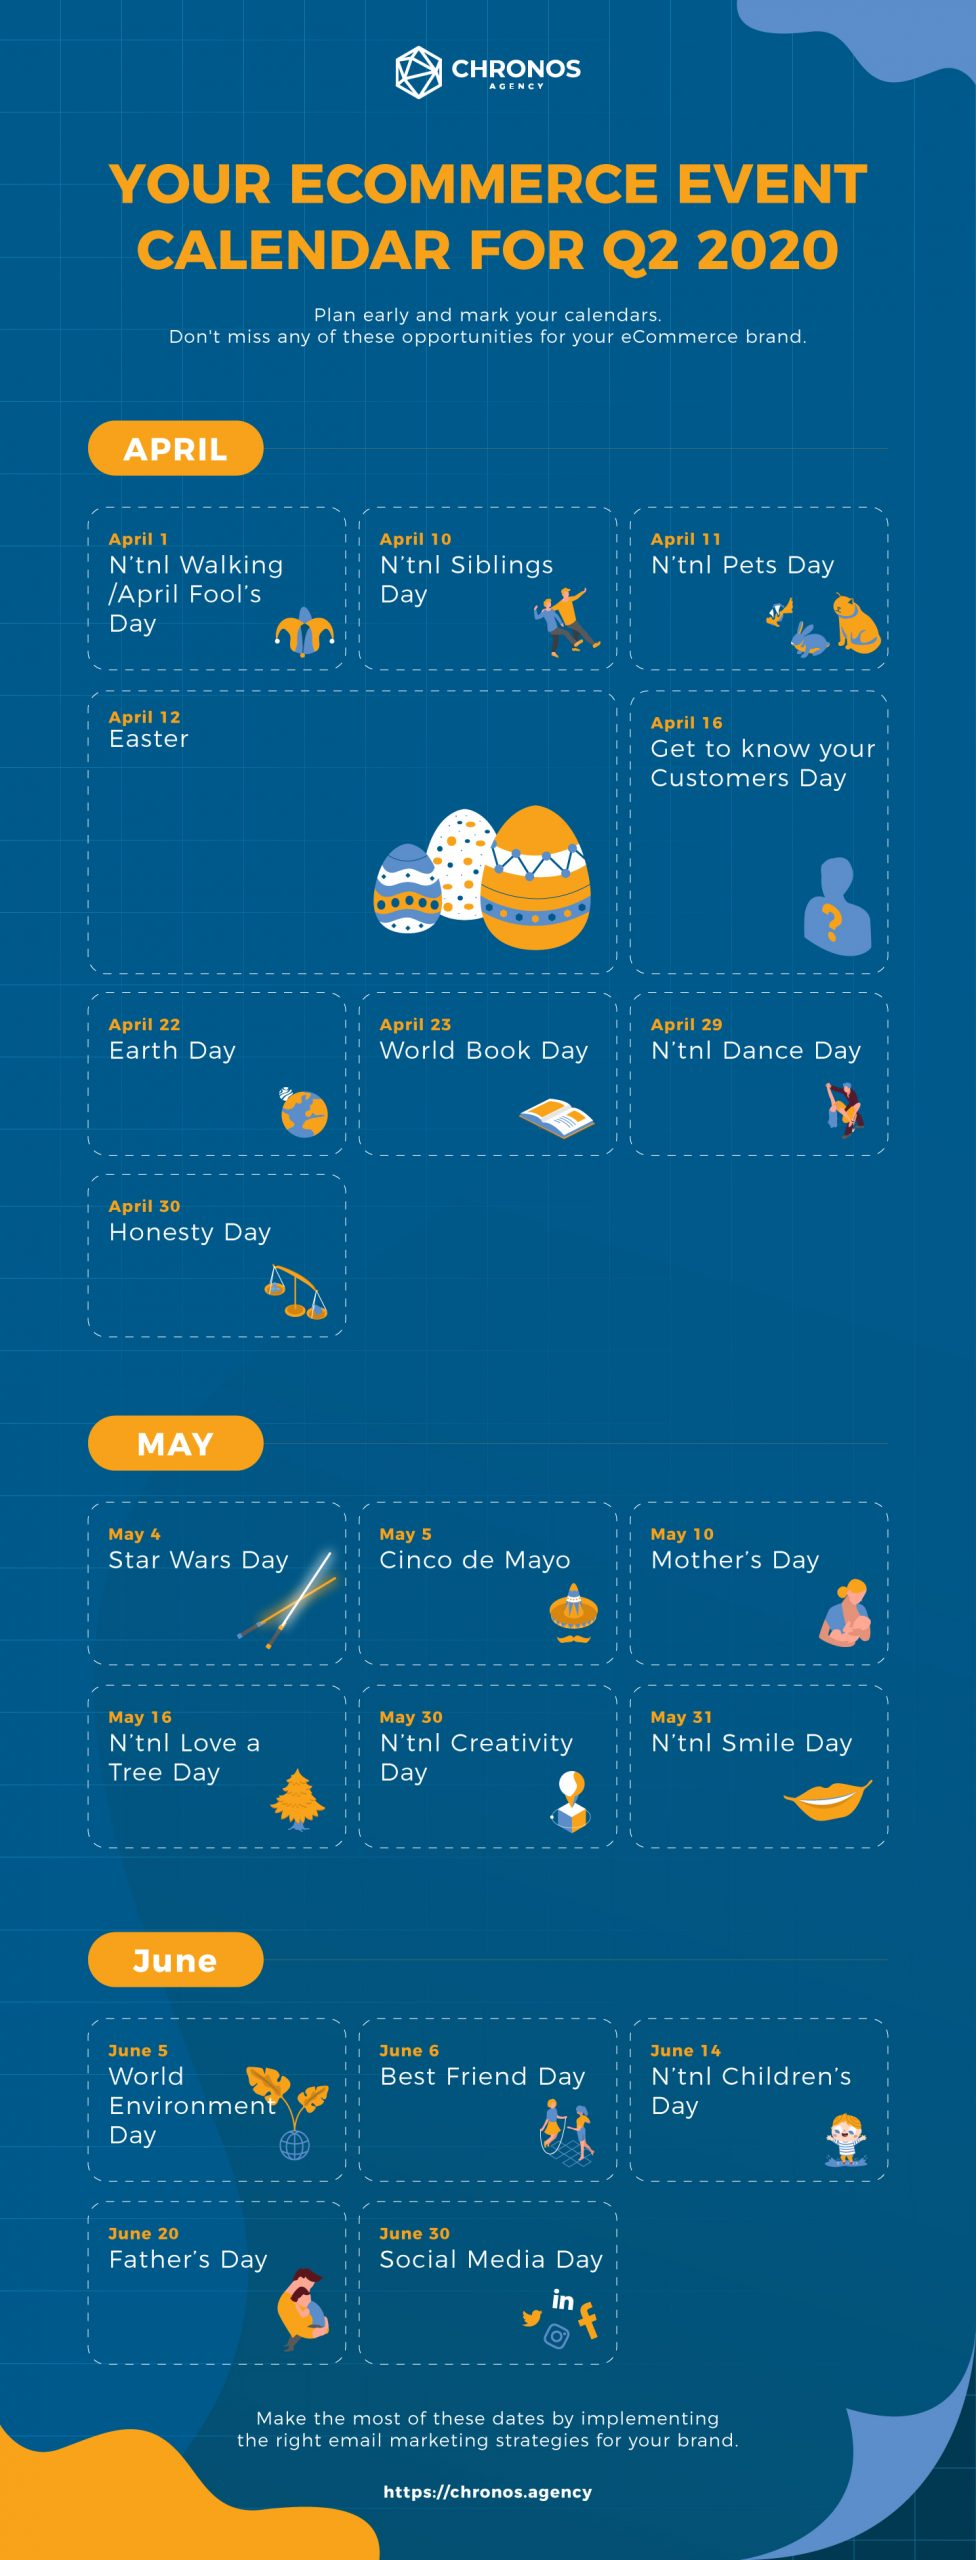 Infographic highlighting the different important events for your eCommerce planning